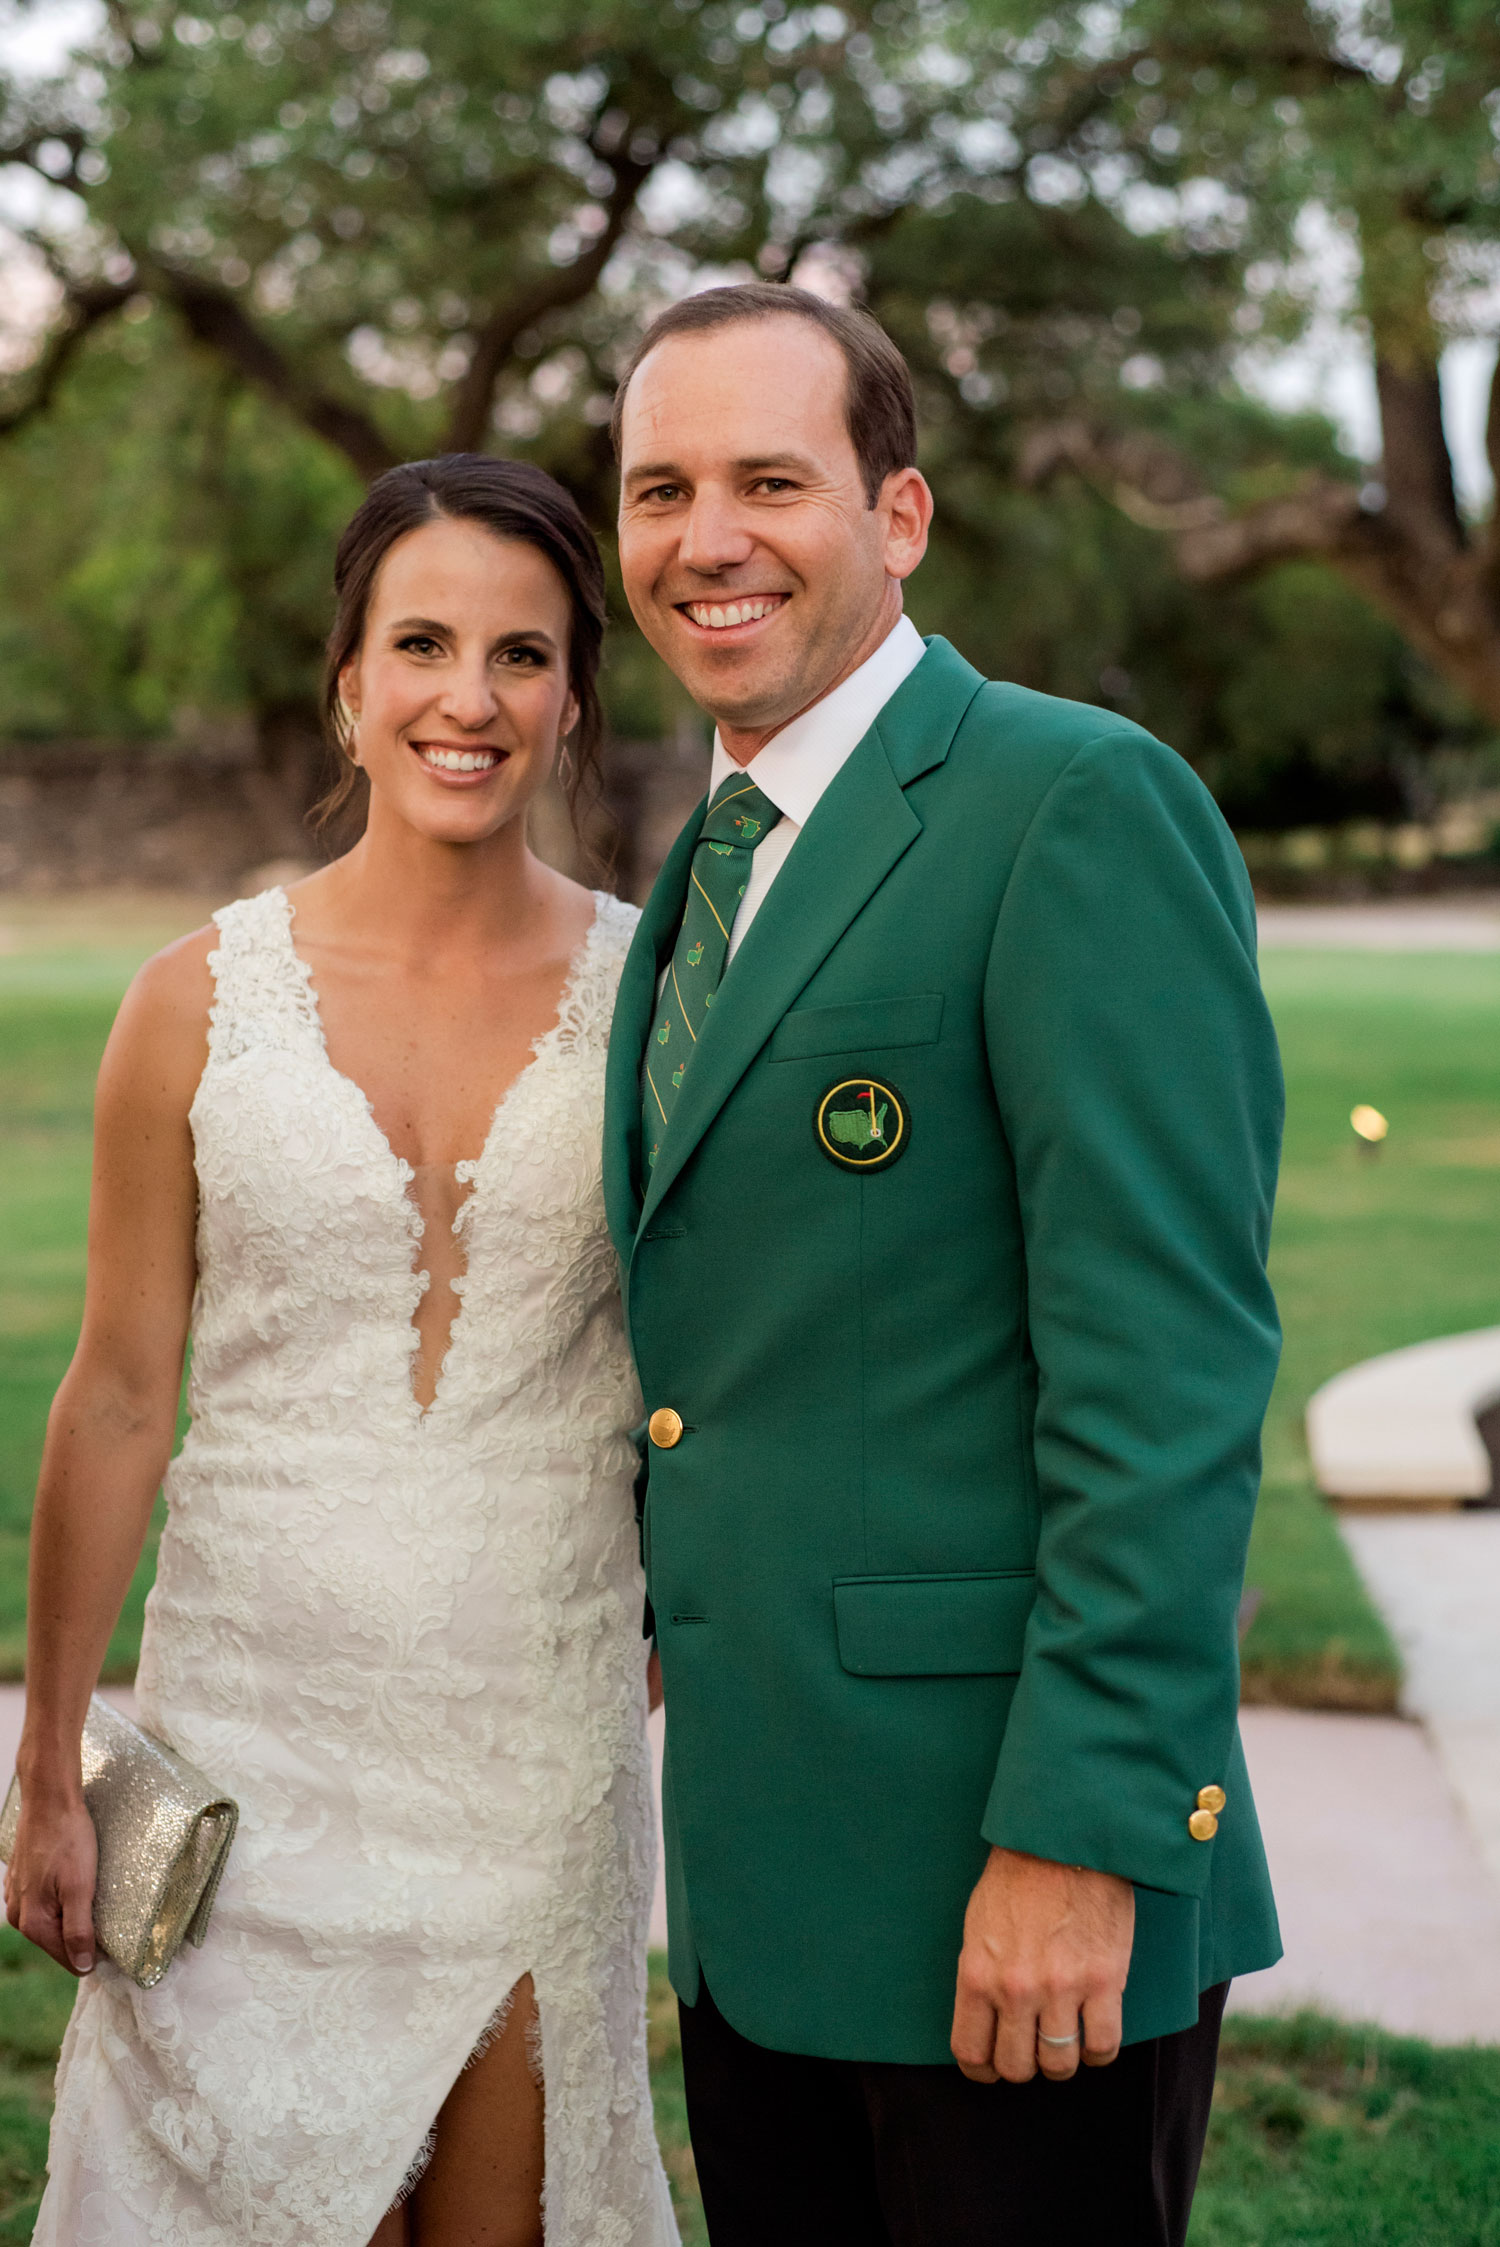 Sergio Garcia wedding in Masters Tournament green jacket for after party inside weddings spring 2018 issue